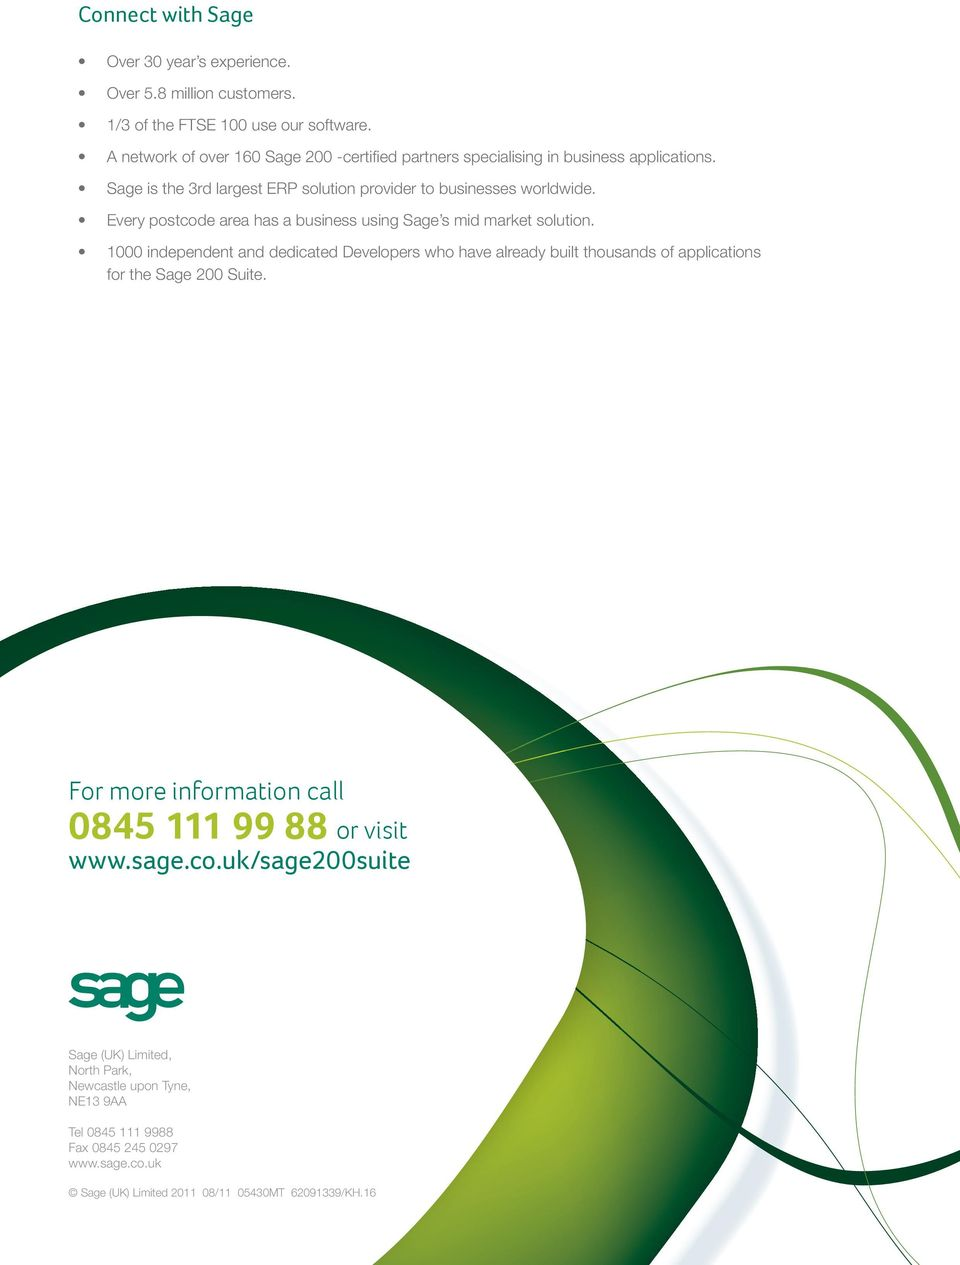 Every postcode area has a business using Sage s mid market solution.